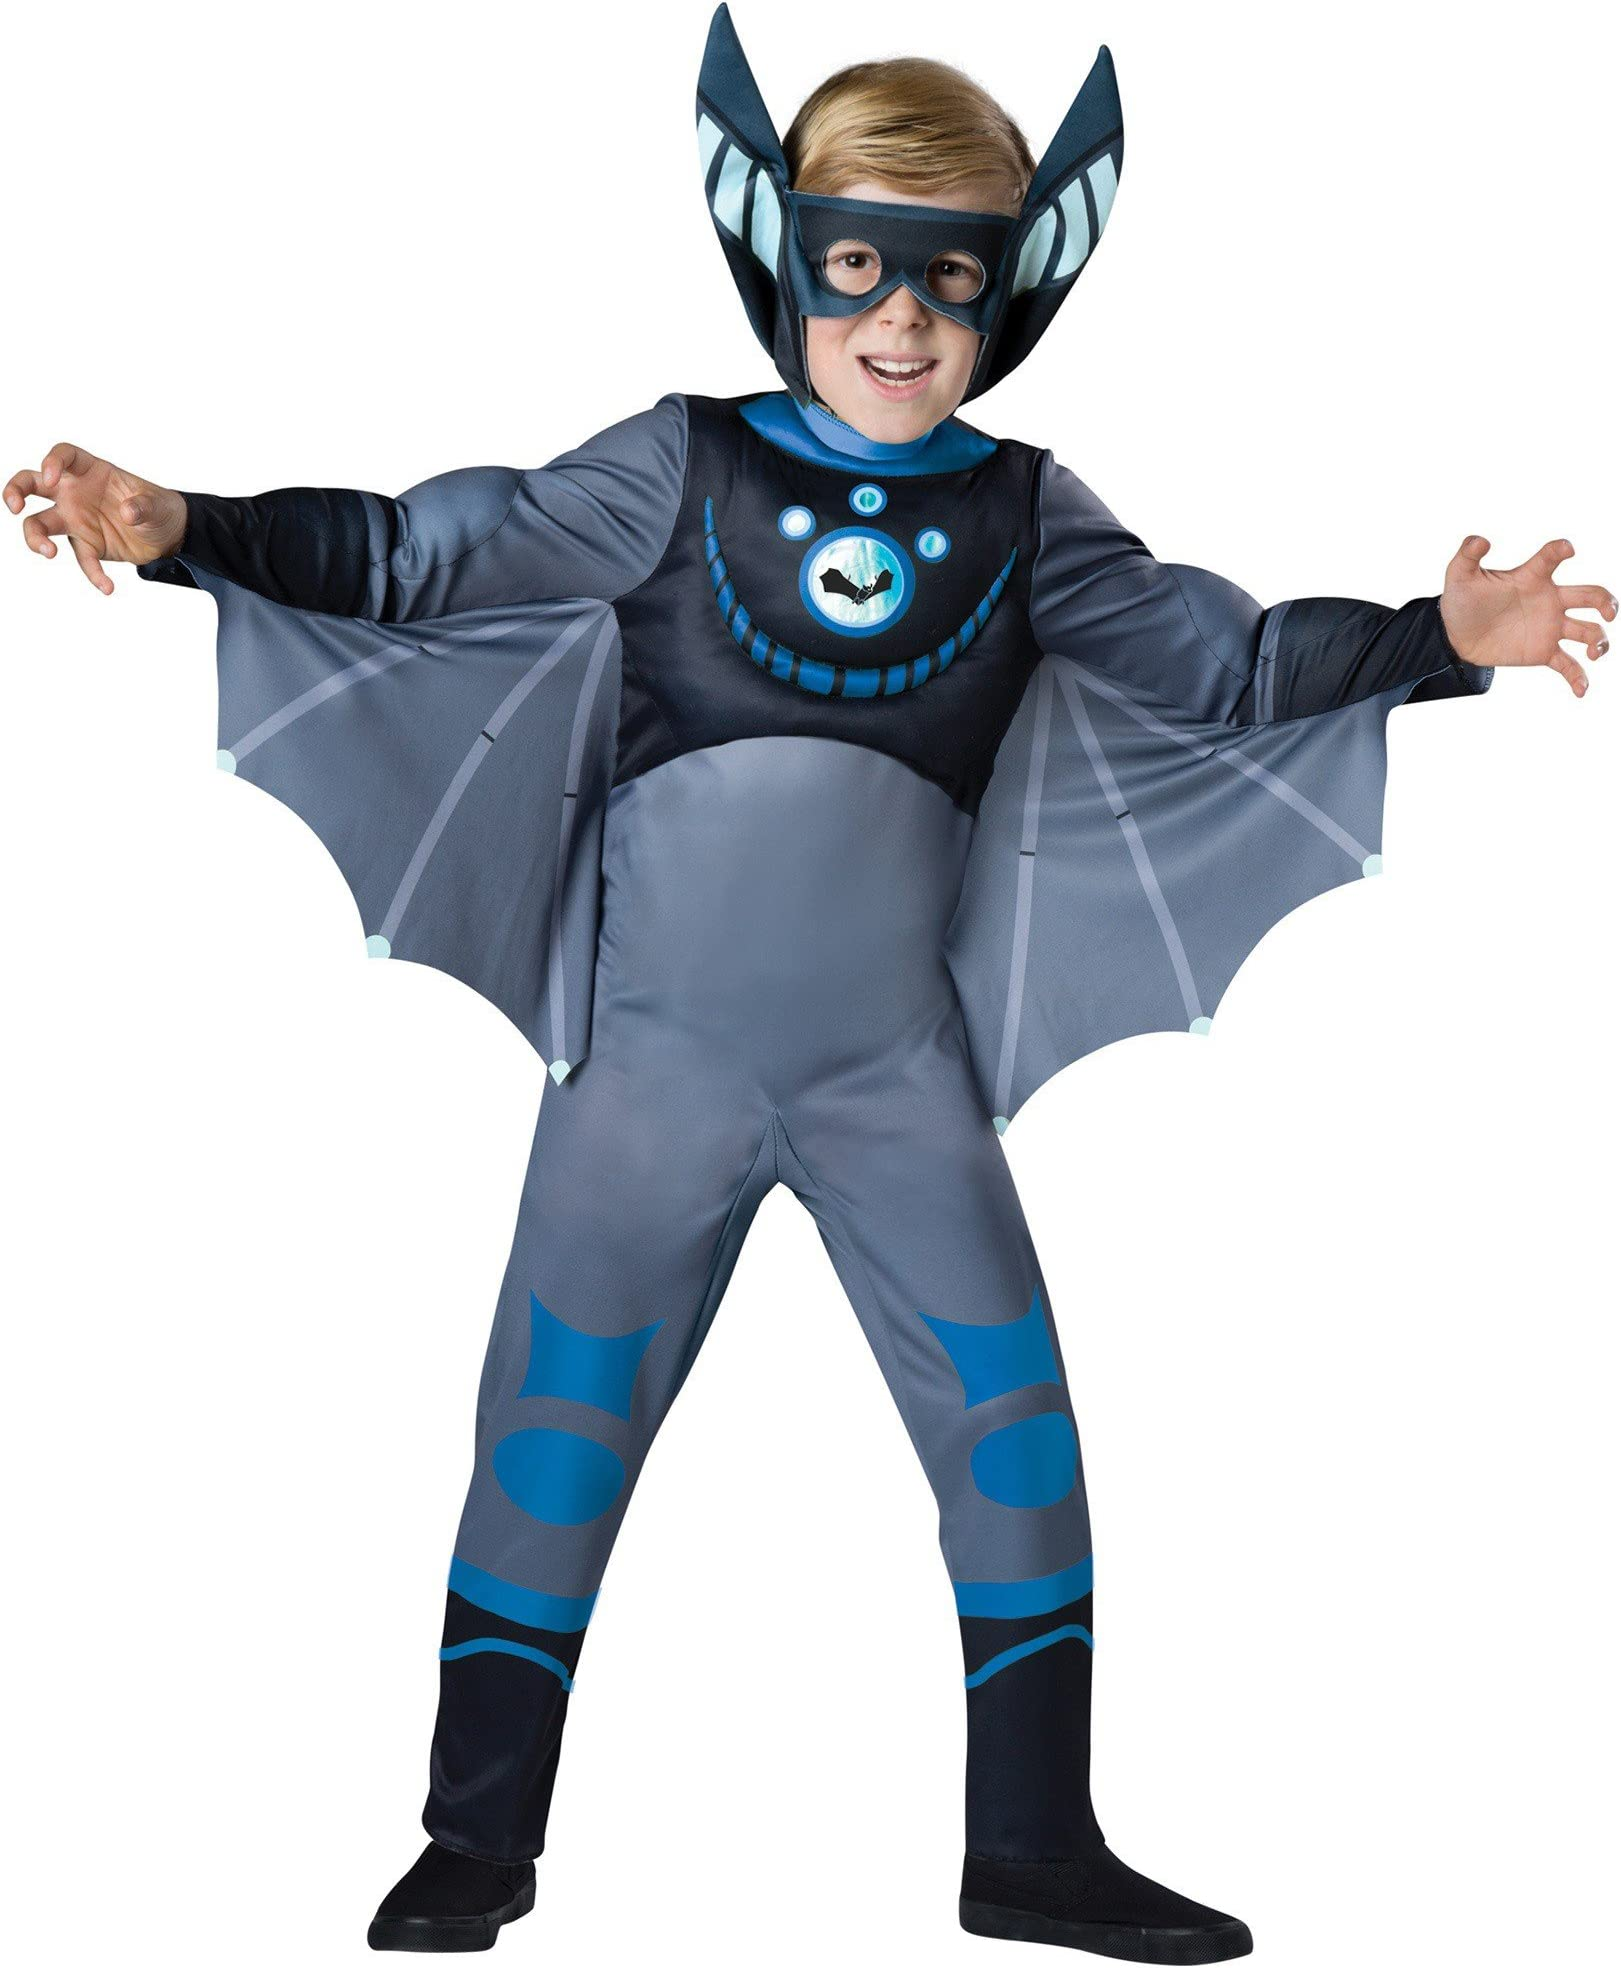 Details about  /Fun World InCharacter Costumes Cheetah One Color Blue Costume 6